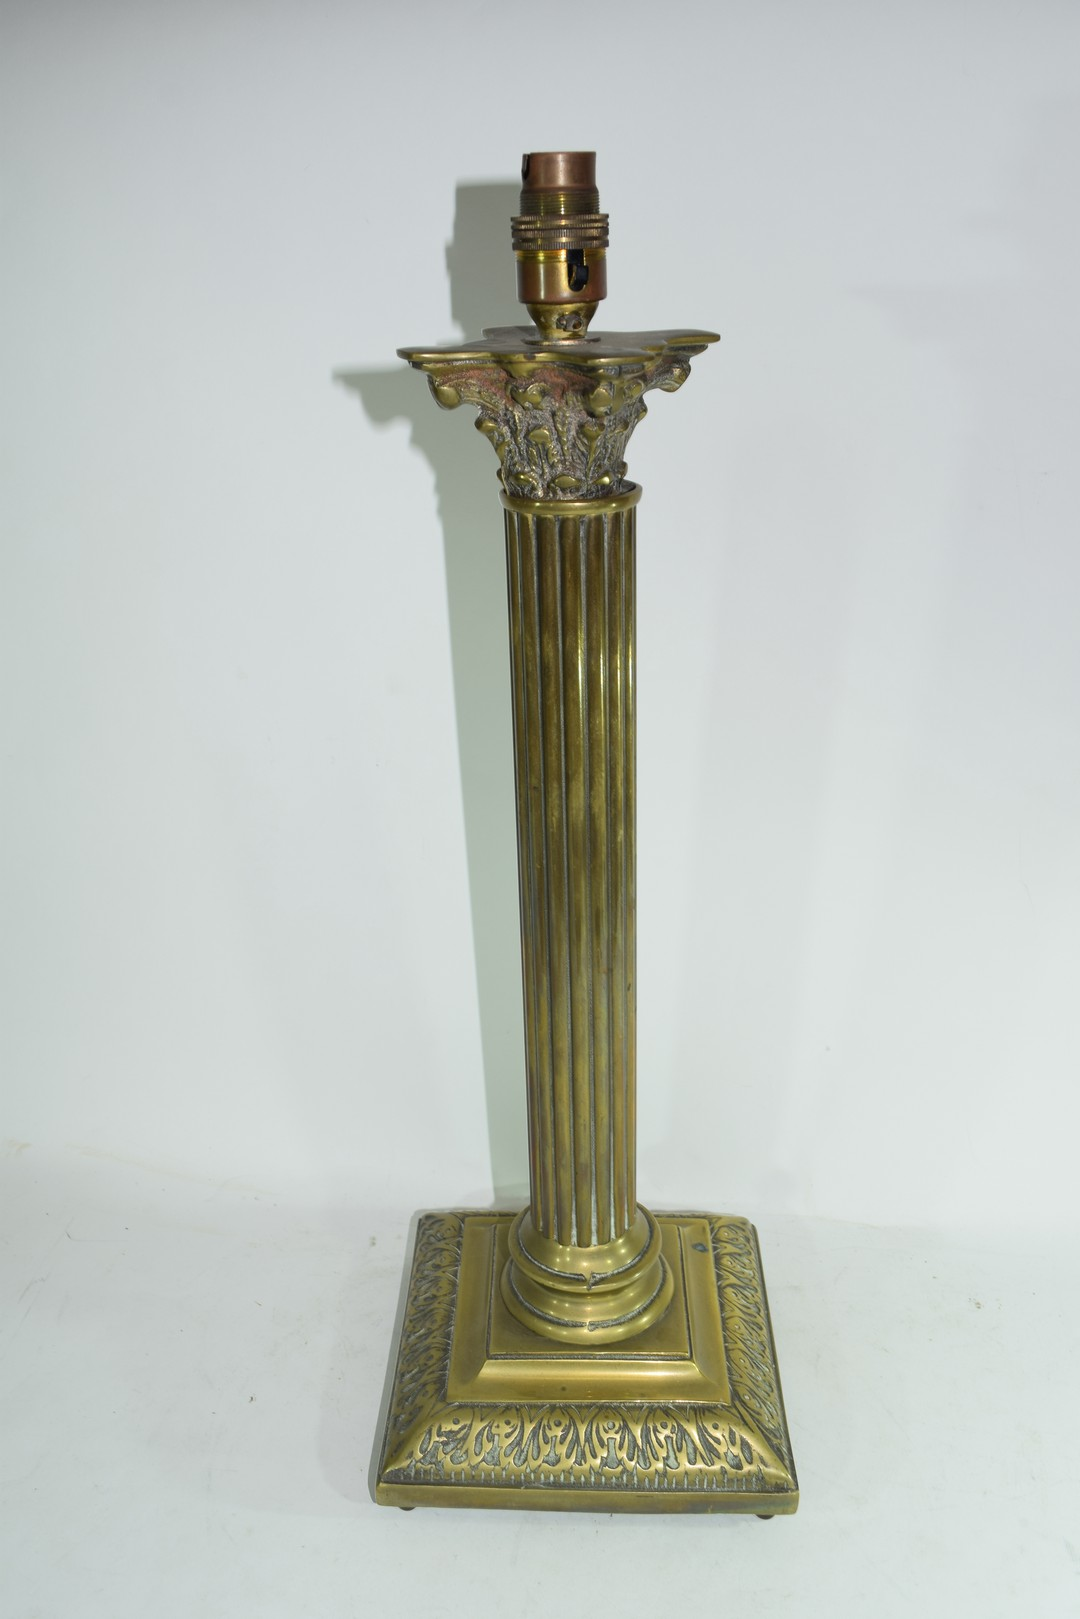 Brass table lamp - Image 2 of 4